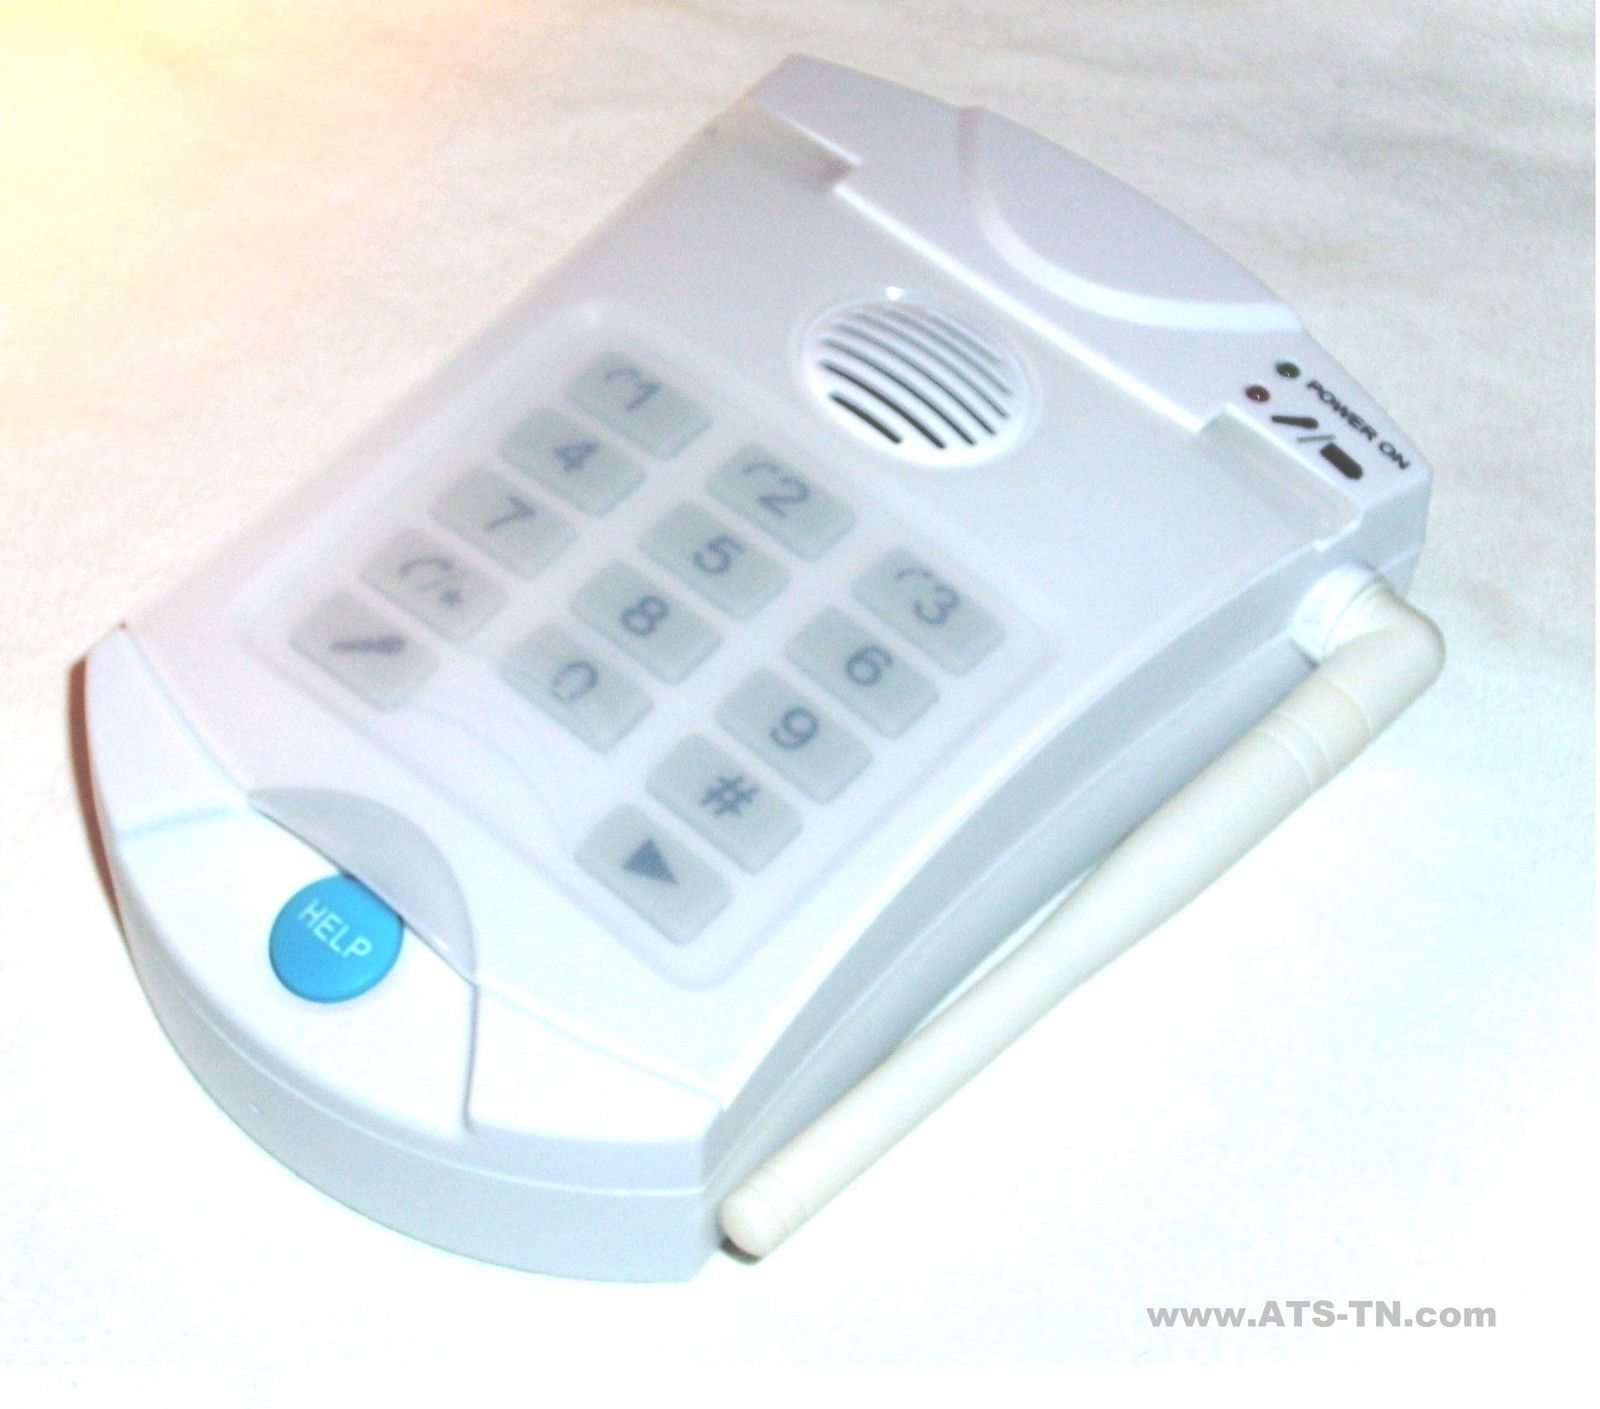 ELDERY LIFE GUARDIAN MEDICAL  EMERGENCY ALERT PHONE SYSTEM NO MONTHLY CHARGES